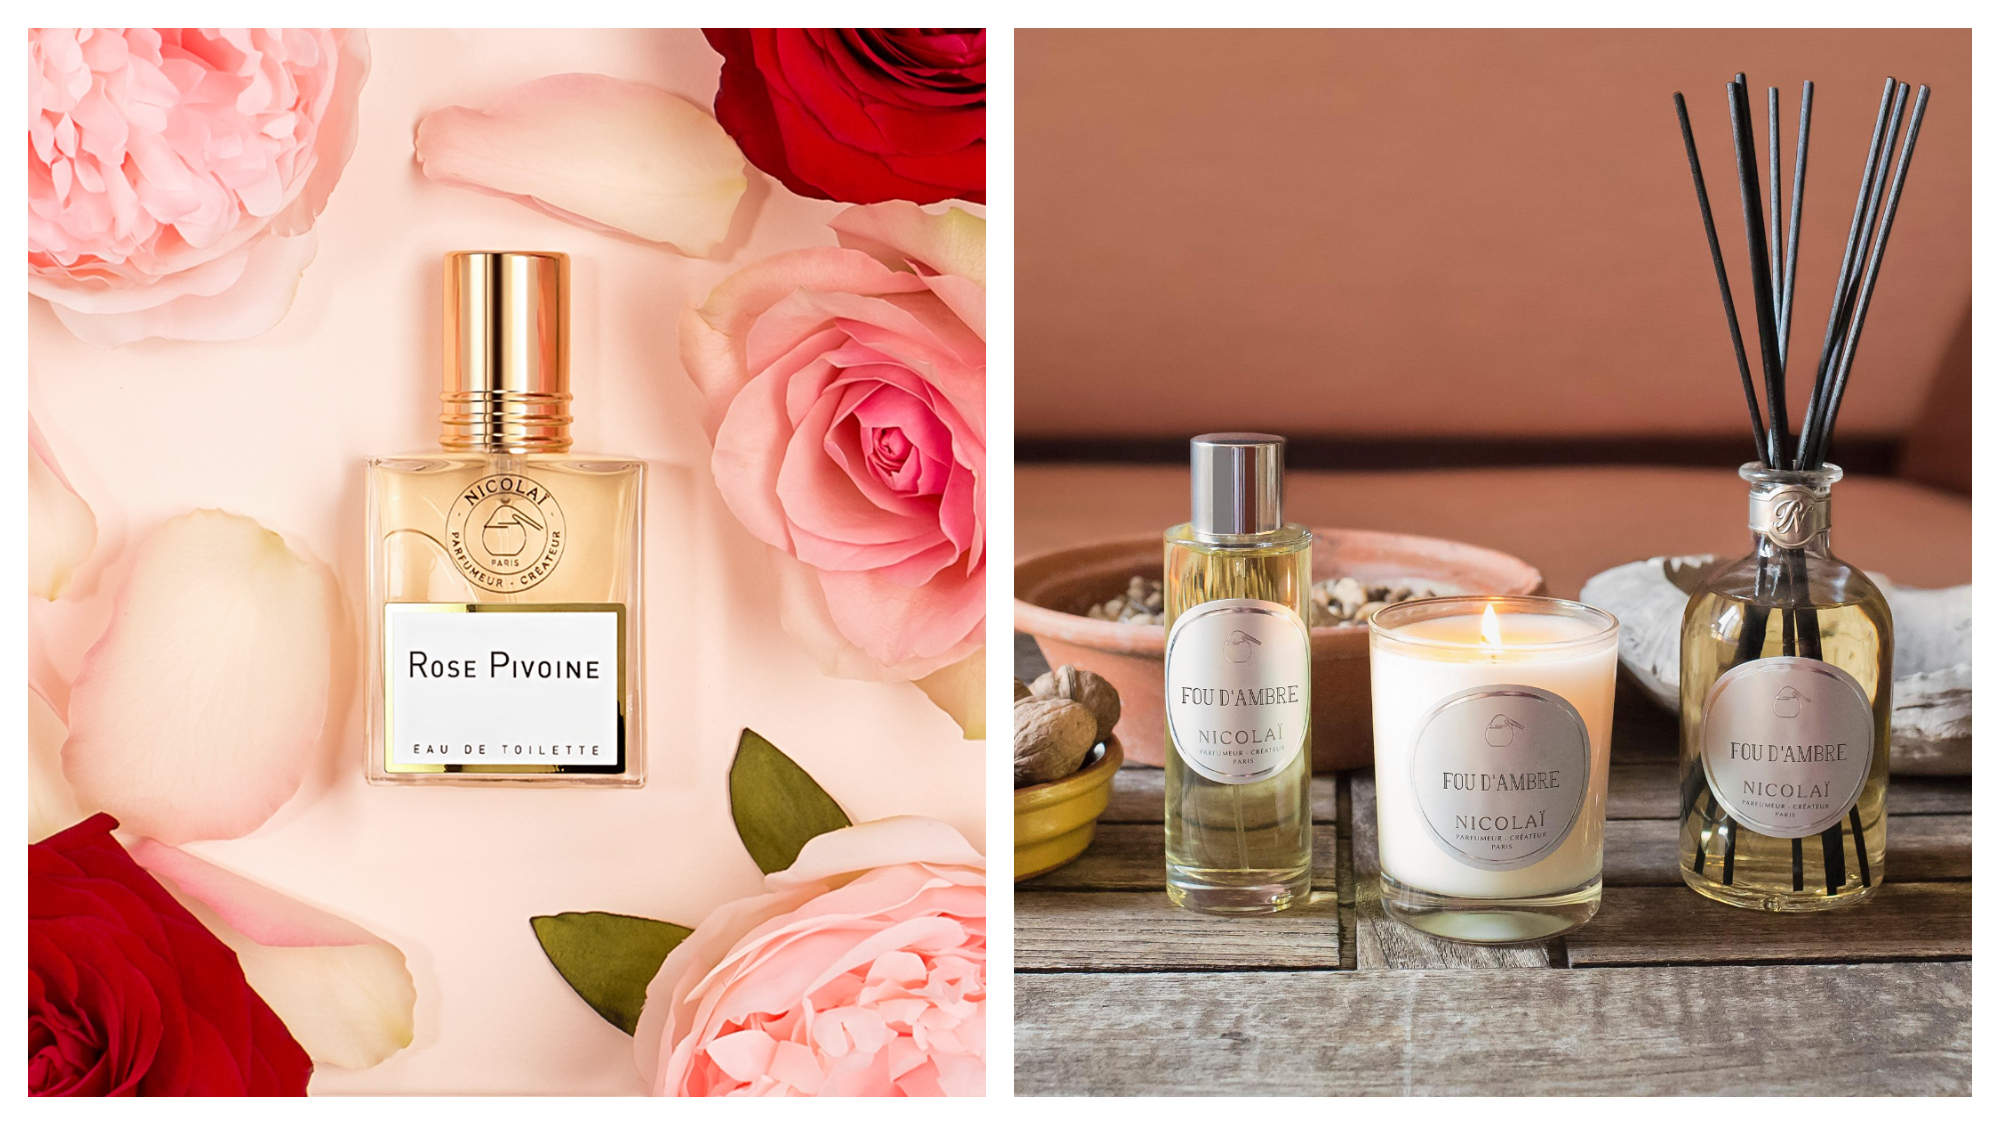 "On left: An elegant bottle of perfume, called ""rose pivoine,"" lays surrounded by pink peonies and roses. It is a scent created by Nicolaï, a 30-year old perfumery founded by the great-granddaughter of Pierre Guerlain. On right: A trio of perfume, a candle, and a diffuser in the scent ""Fou d'Ambre"" were created by the perfumery Nicolaï, whose laboratory is located on the rue de Richelieu in Paris."